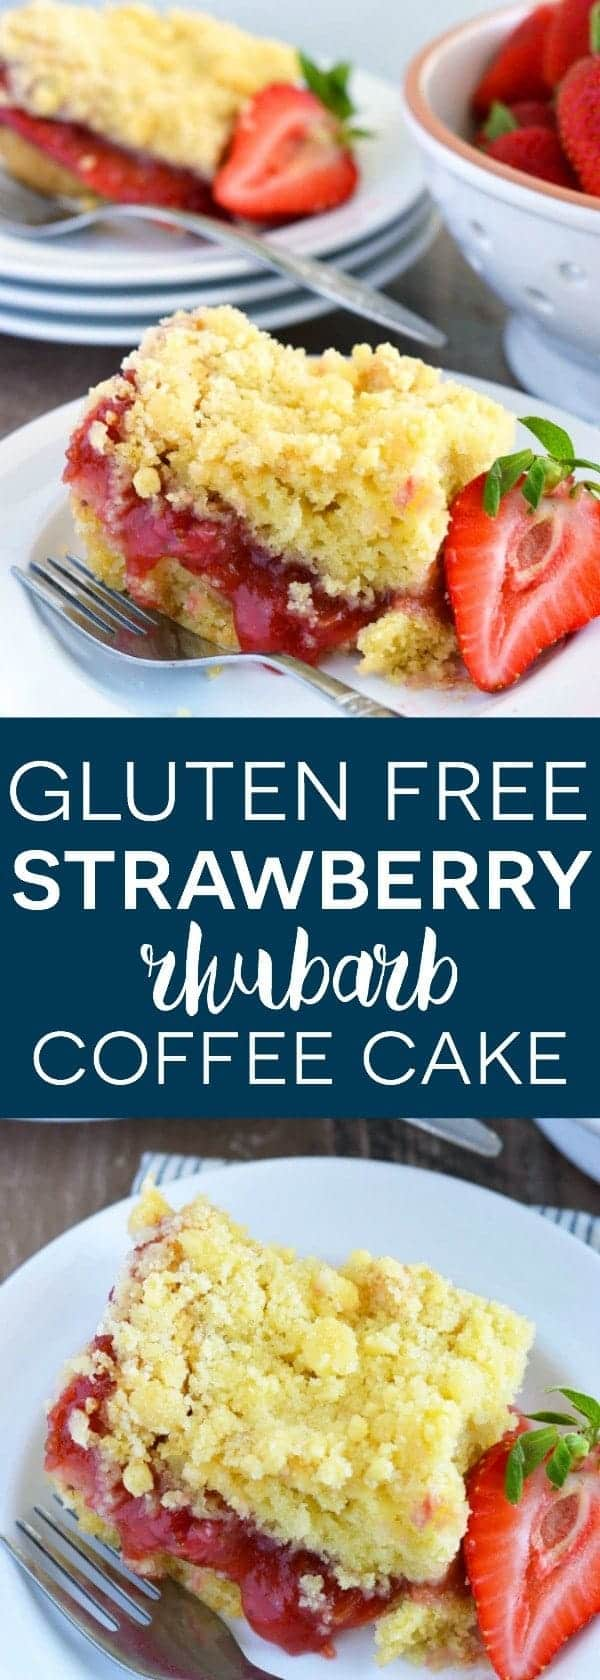 Gluten Free and Dairy Free Strawberry Rhubarb Coffee Cake from What The Fork Food Blog   whattheforkfoodblog.com